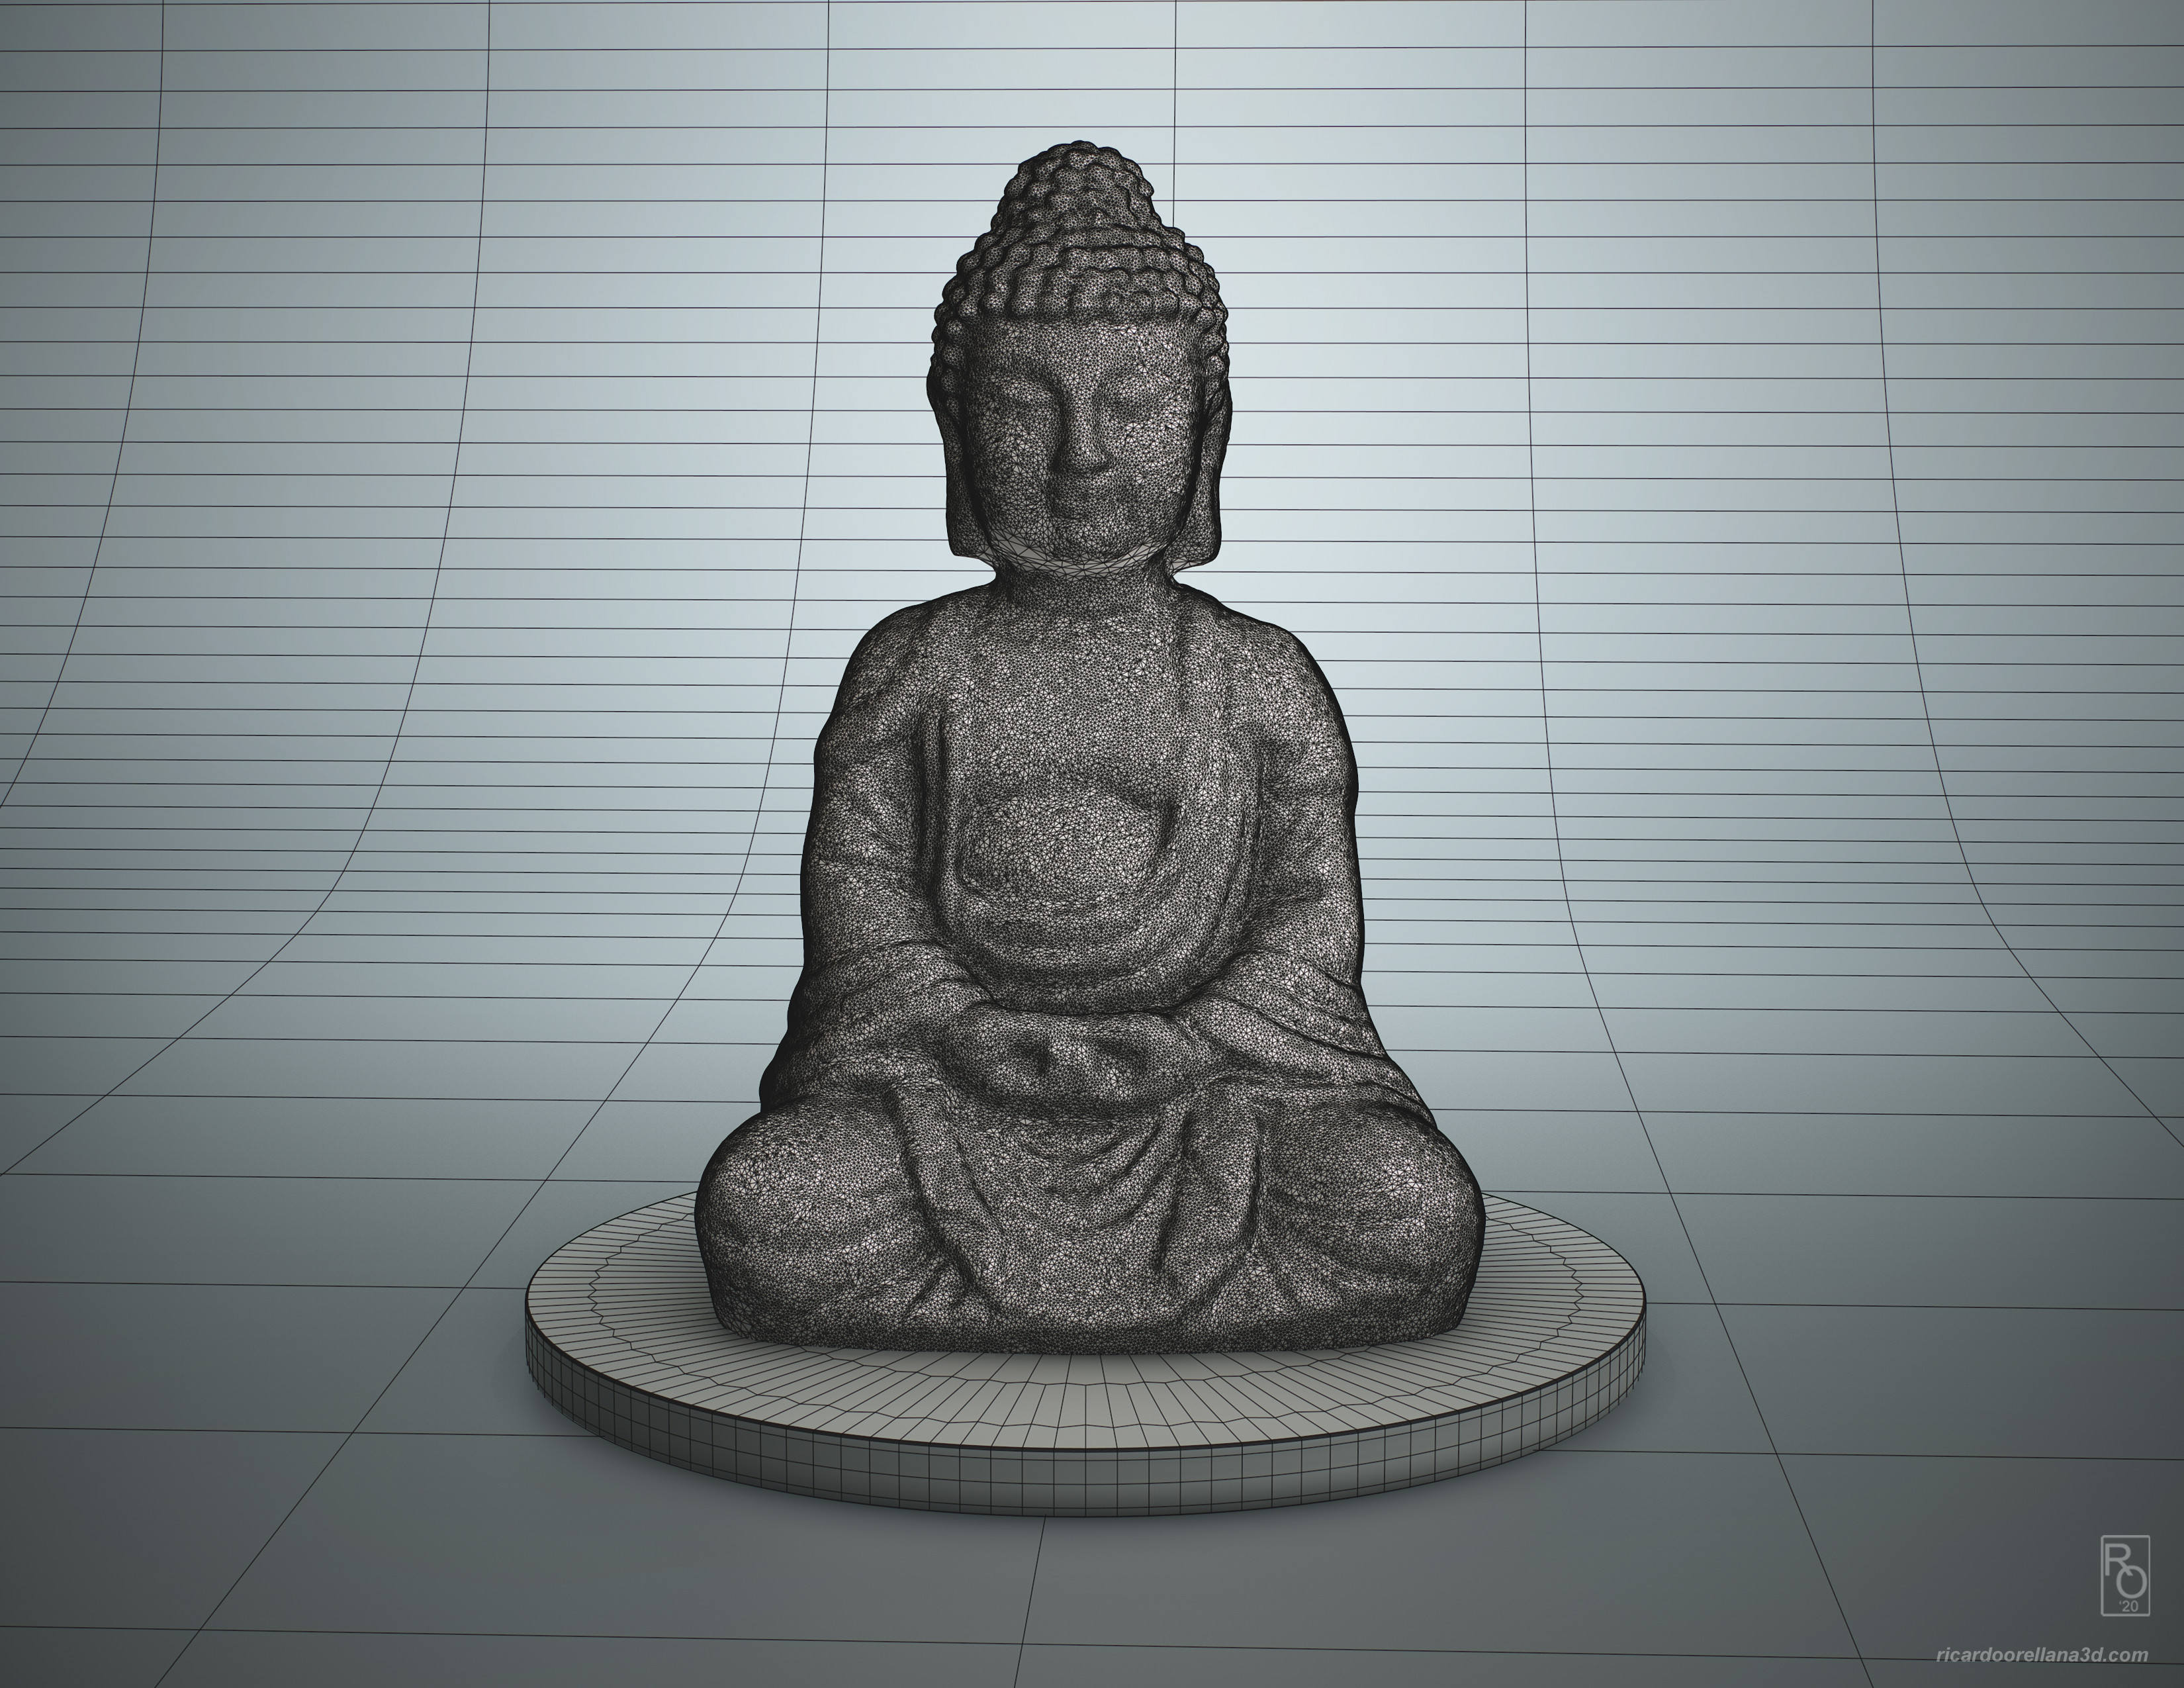 Original wireframe mesh result from the capture with base cleanup